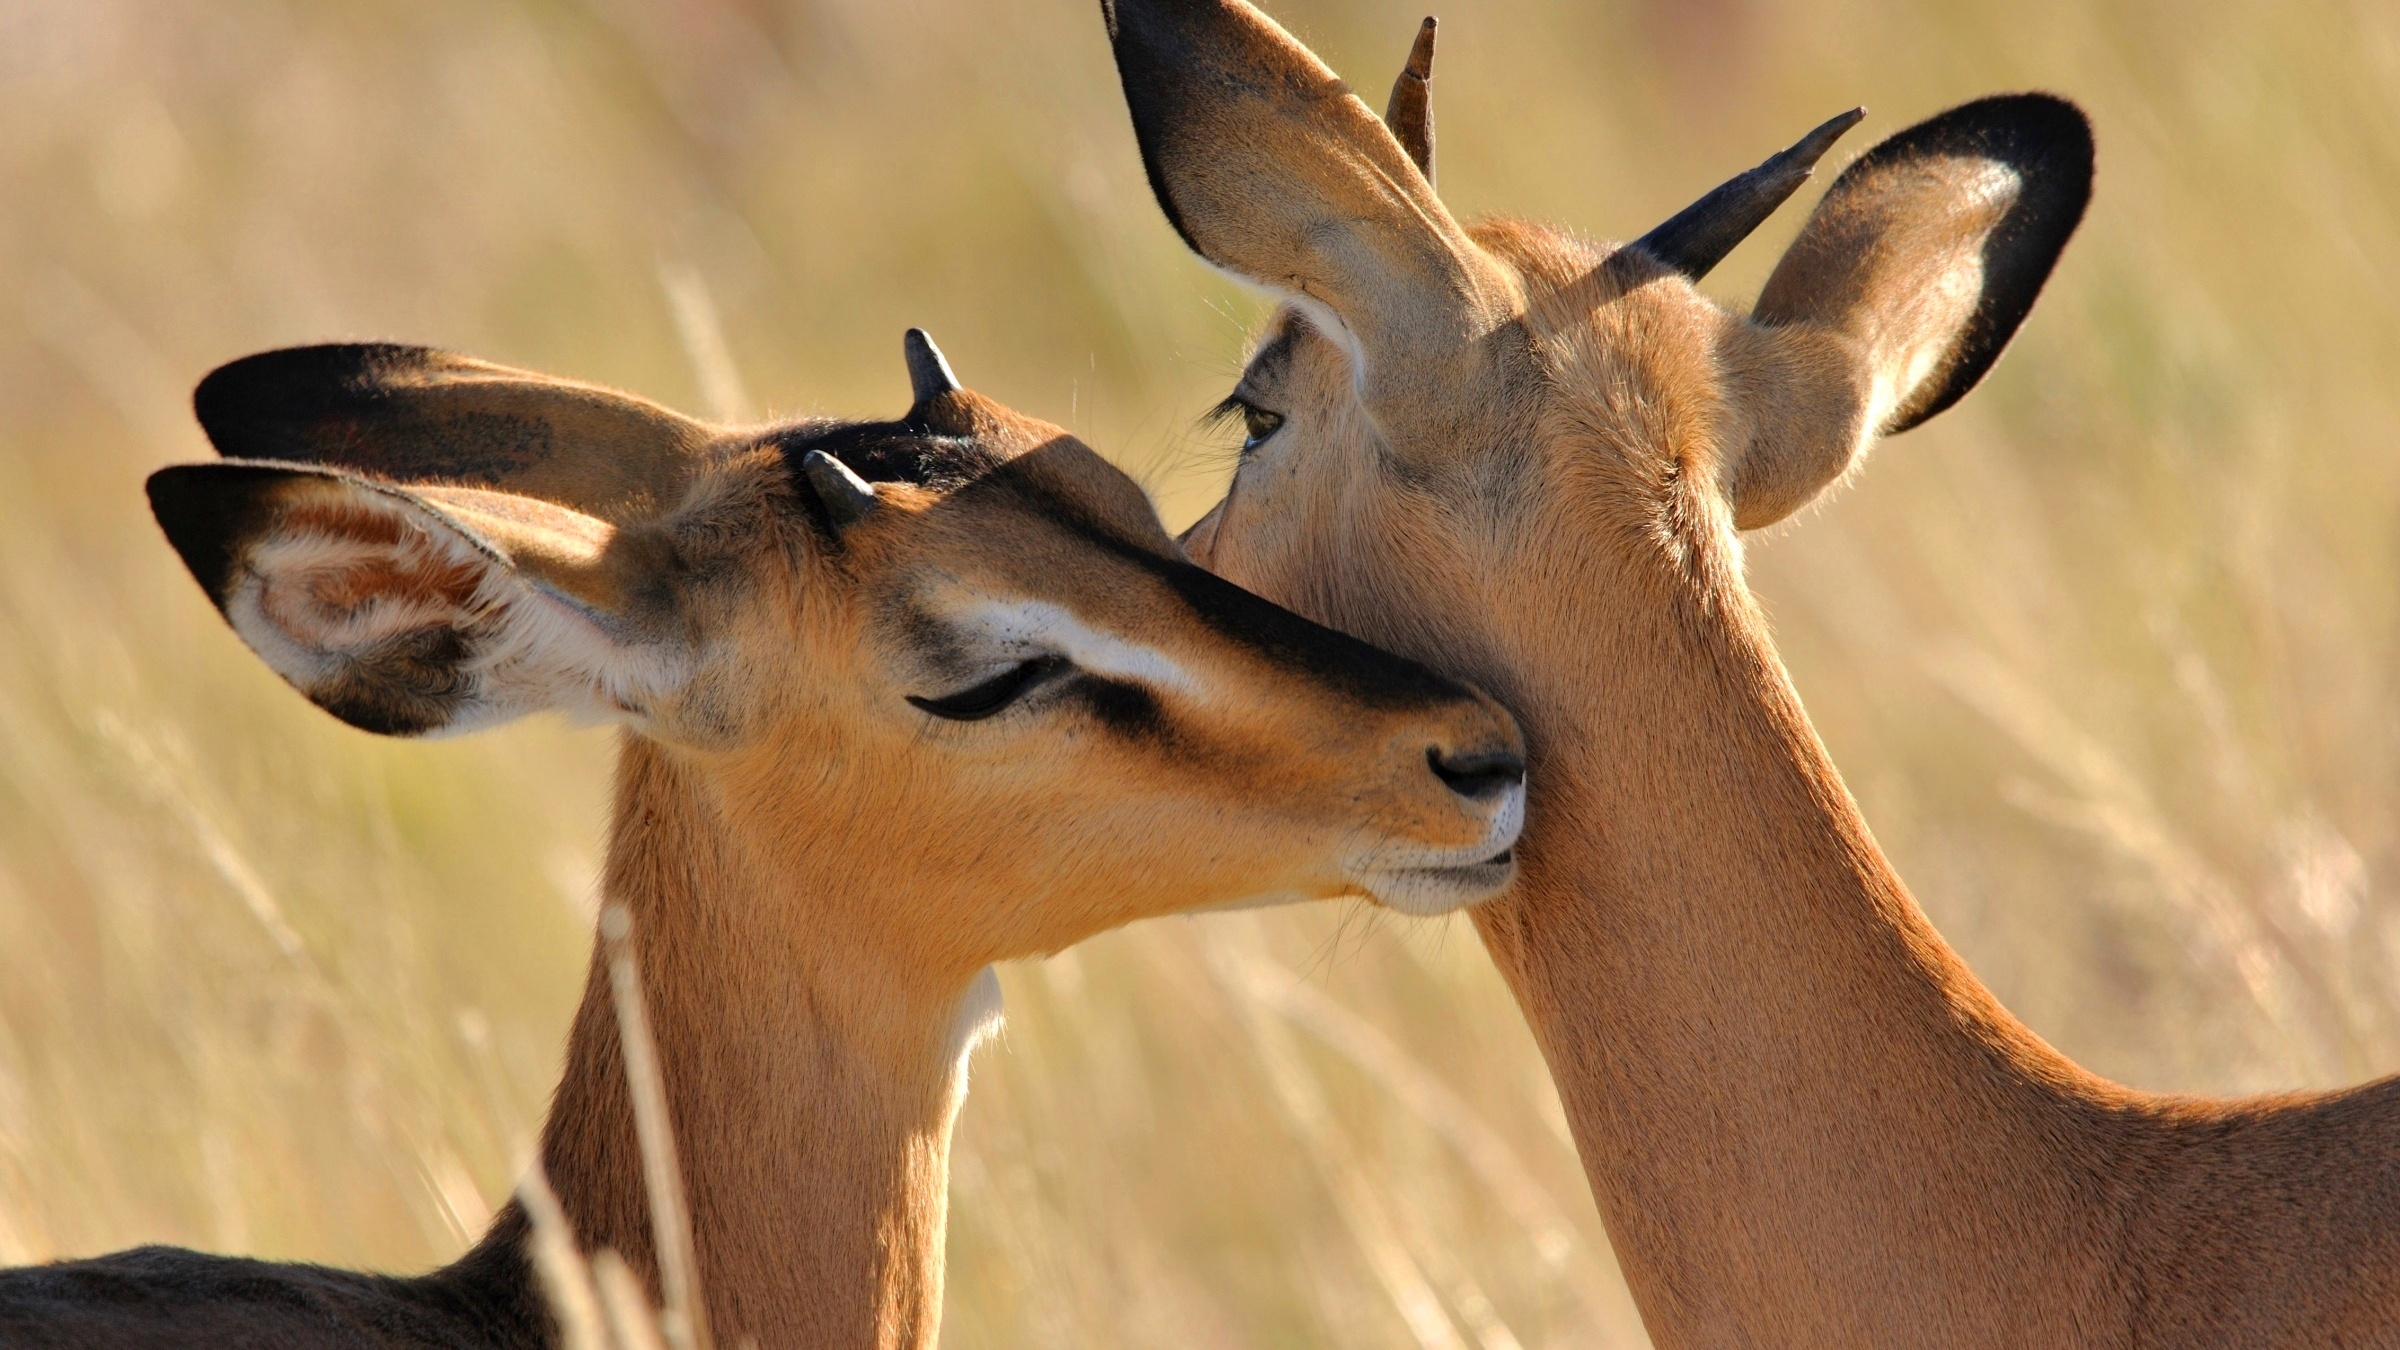 Ultra Hd Desktop Wallpapers Cute Antelope Wallpapers 2400x1350 945741